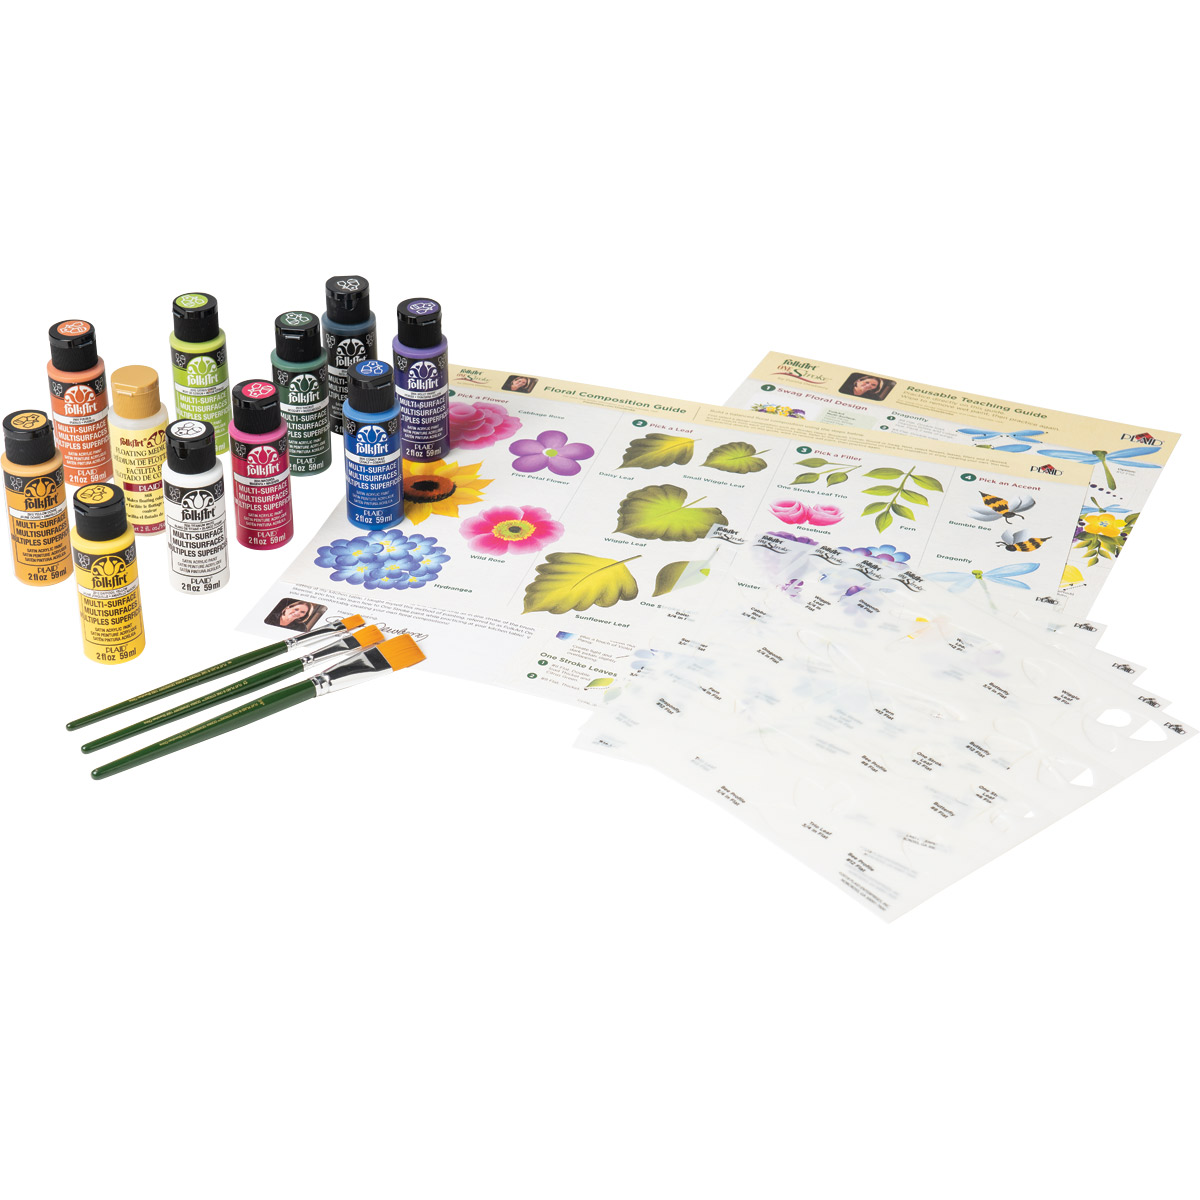 FolkArt ® One Stroke™ Beginner Foundation Stencil and Painting Kit - 99273